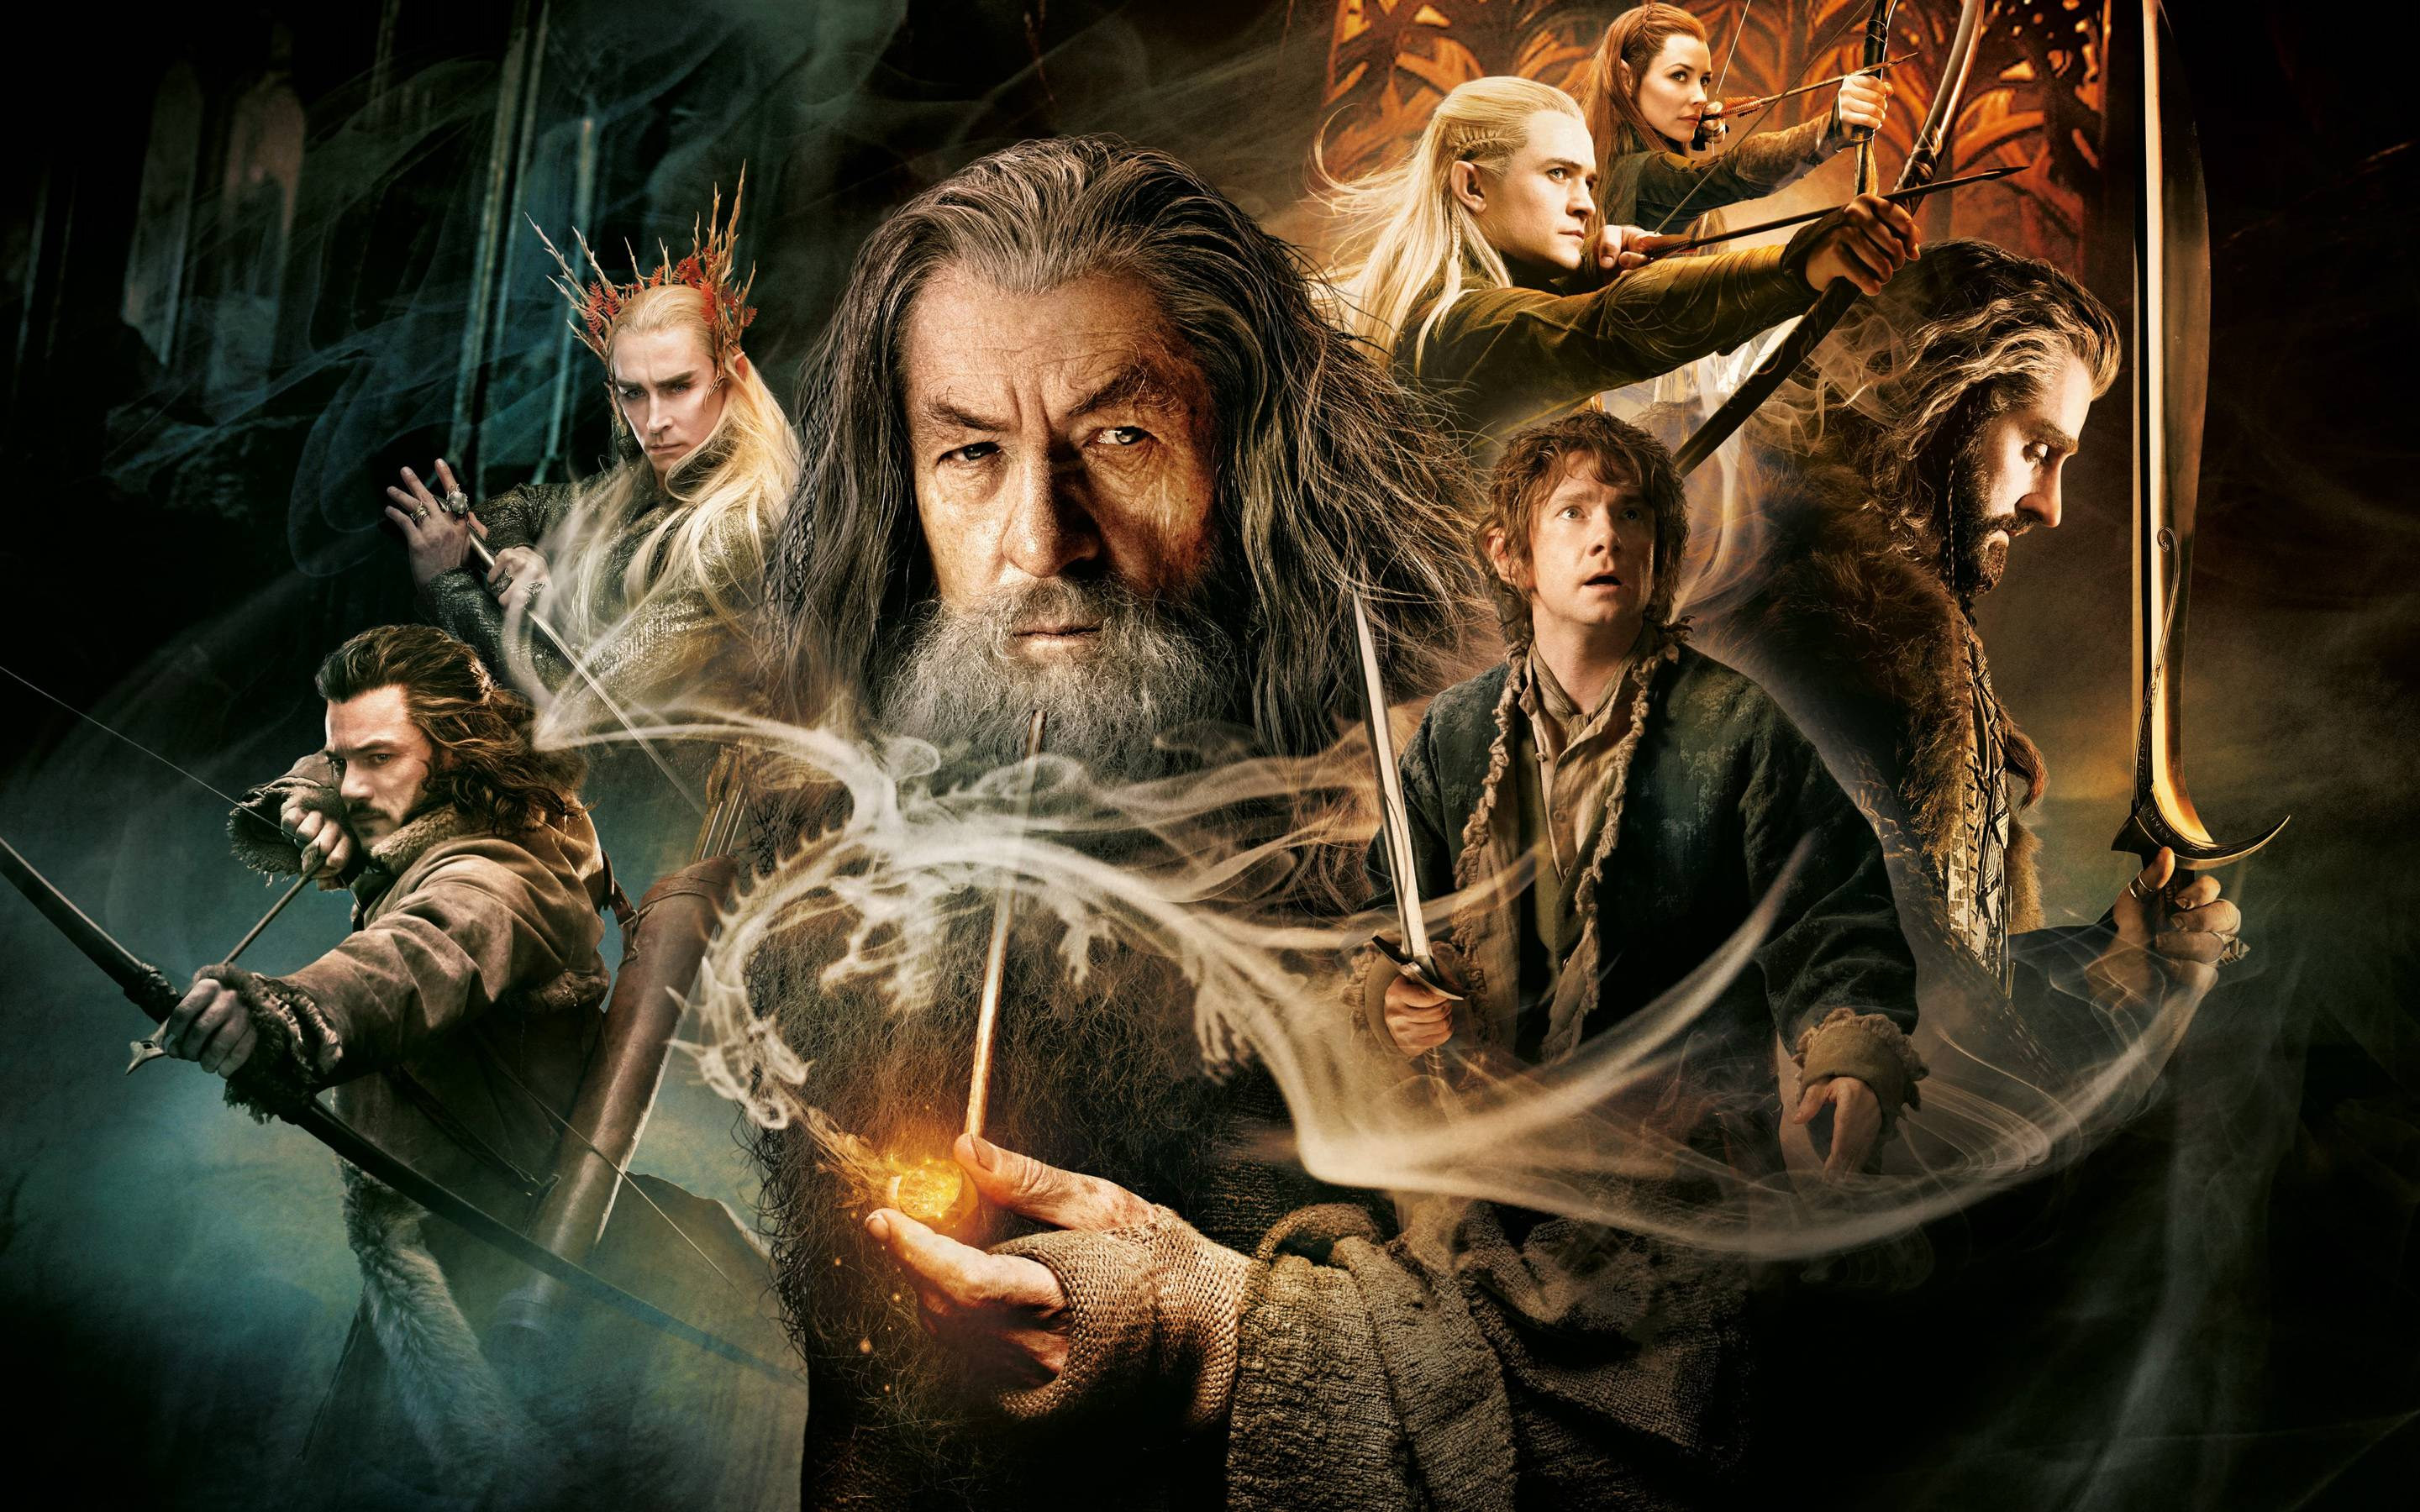 Hobbit Wallpapers - Full HD wallpaper search